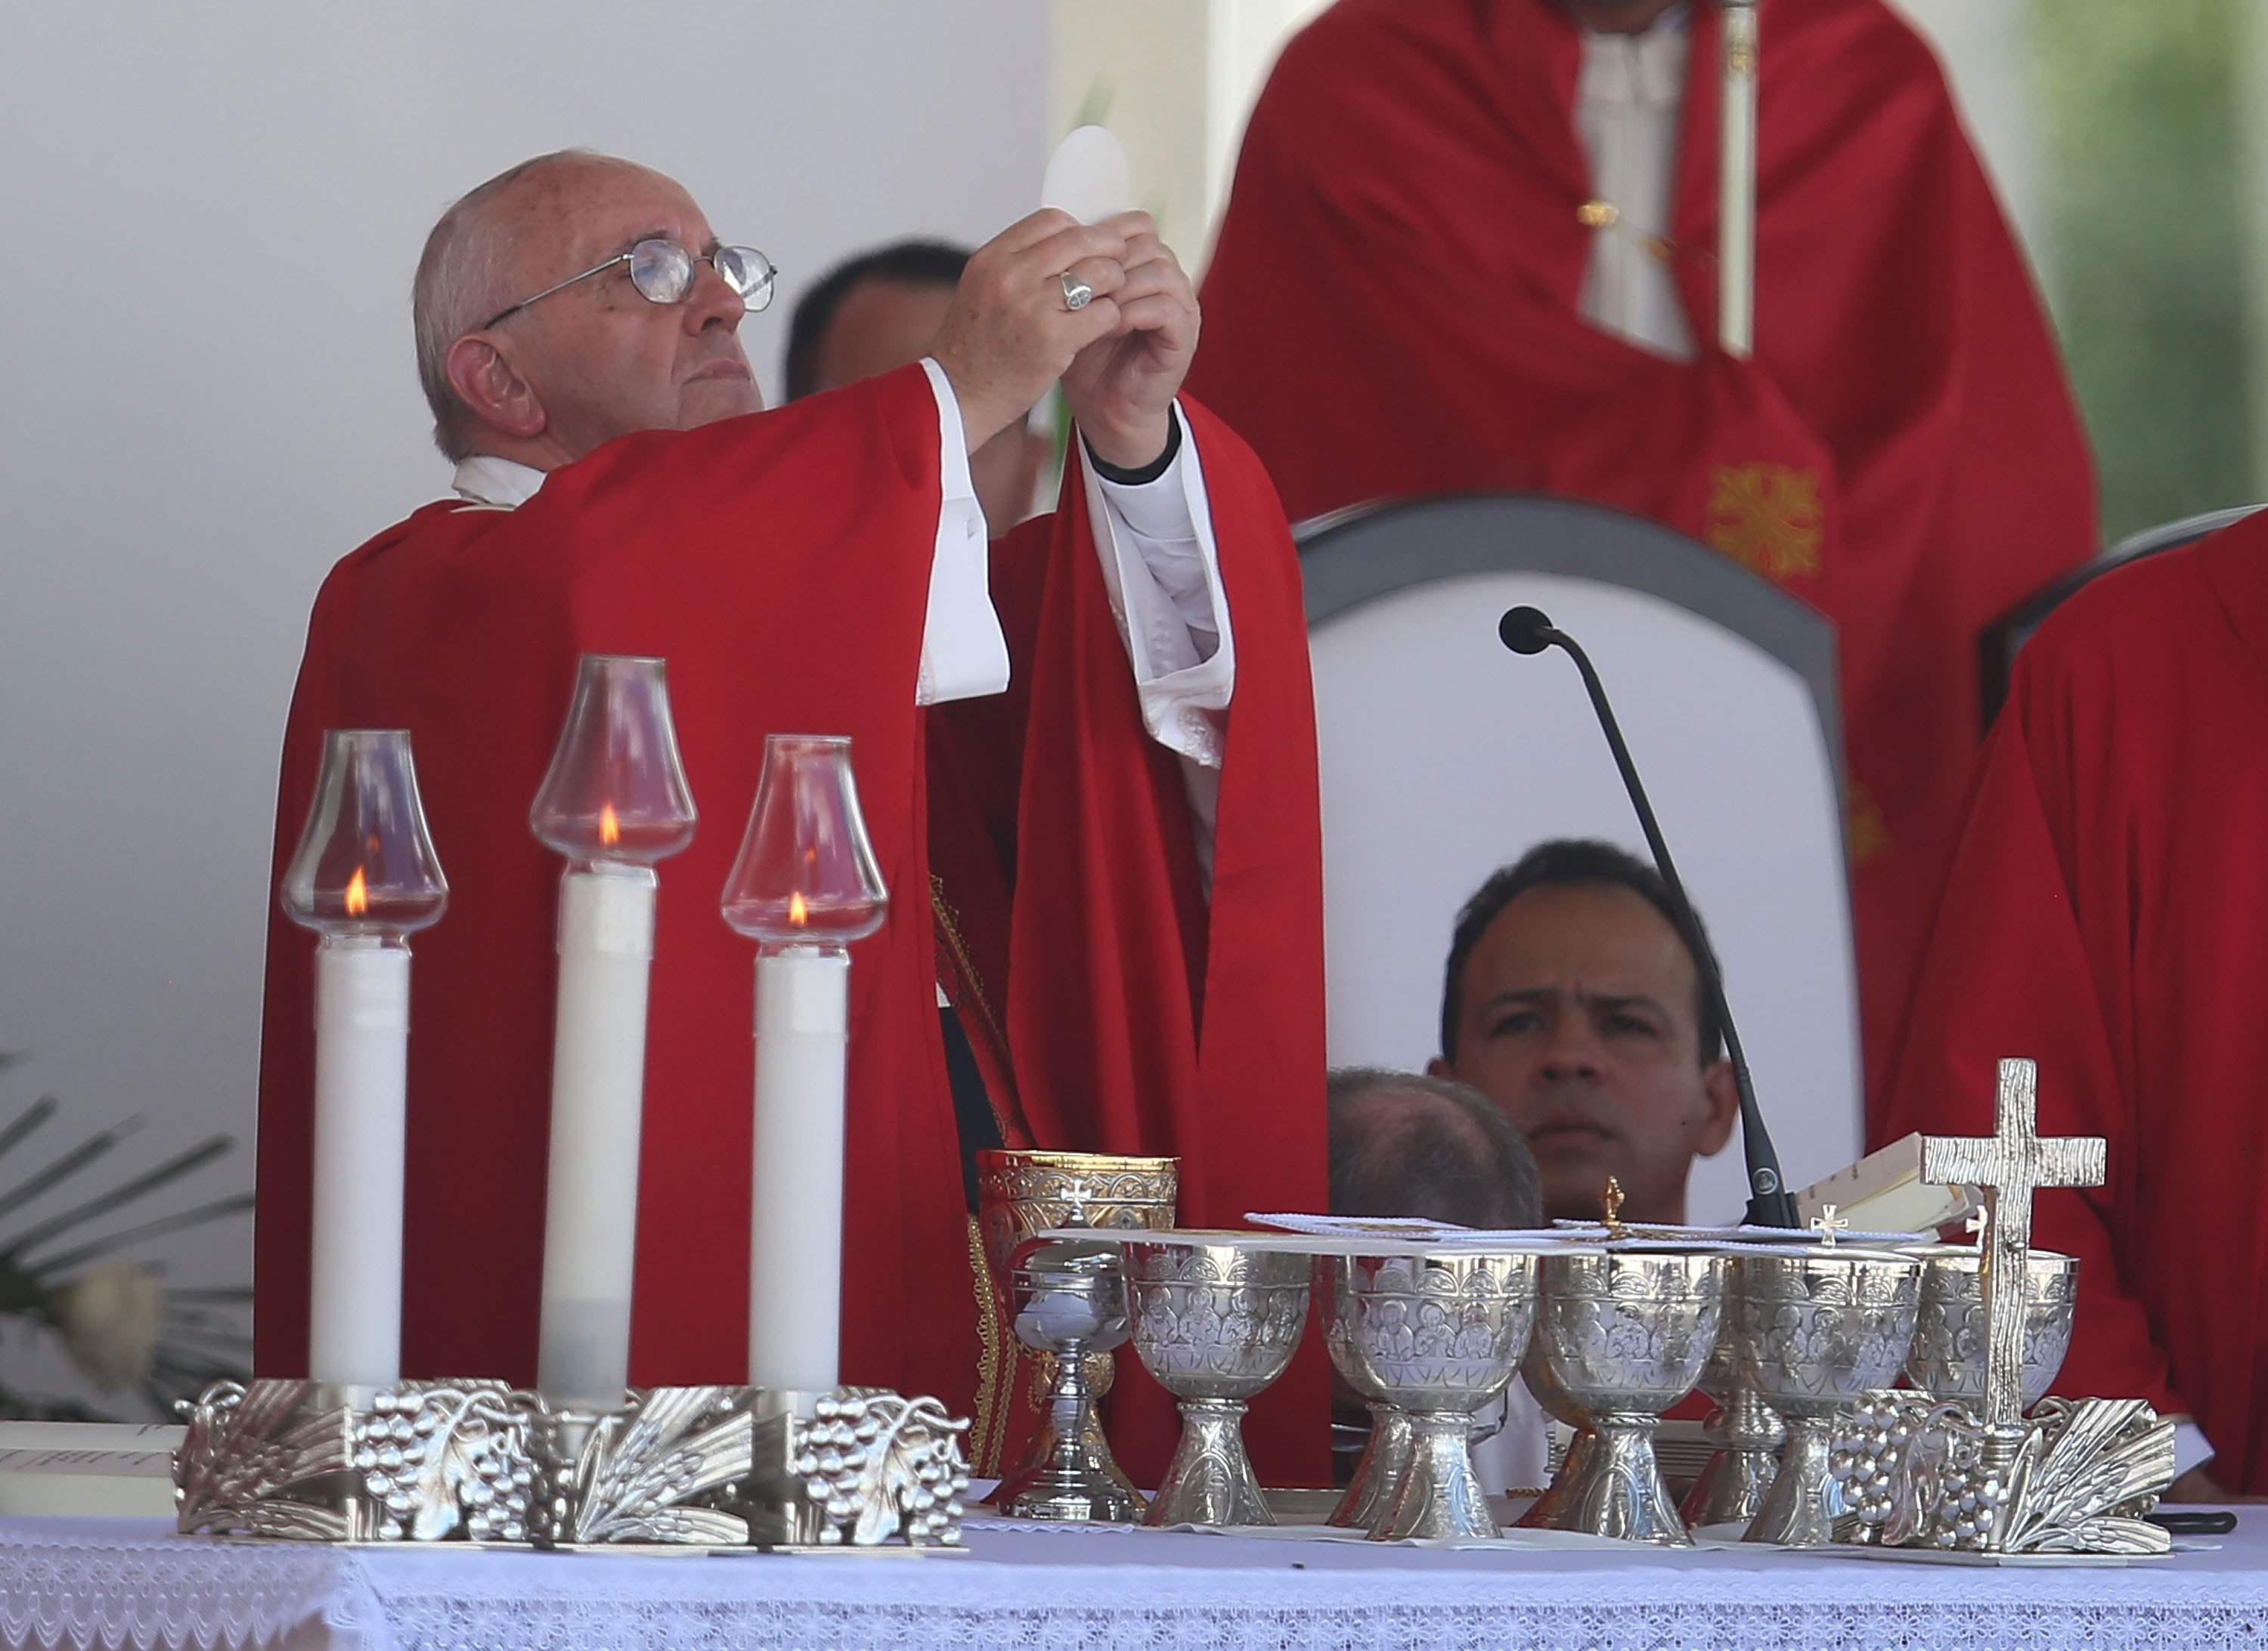 Pope Francis celebrates mass in Holguin, Cuba, Monday on the second day of a three-day trip before moving on to the United States. (Getty Images)